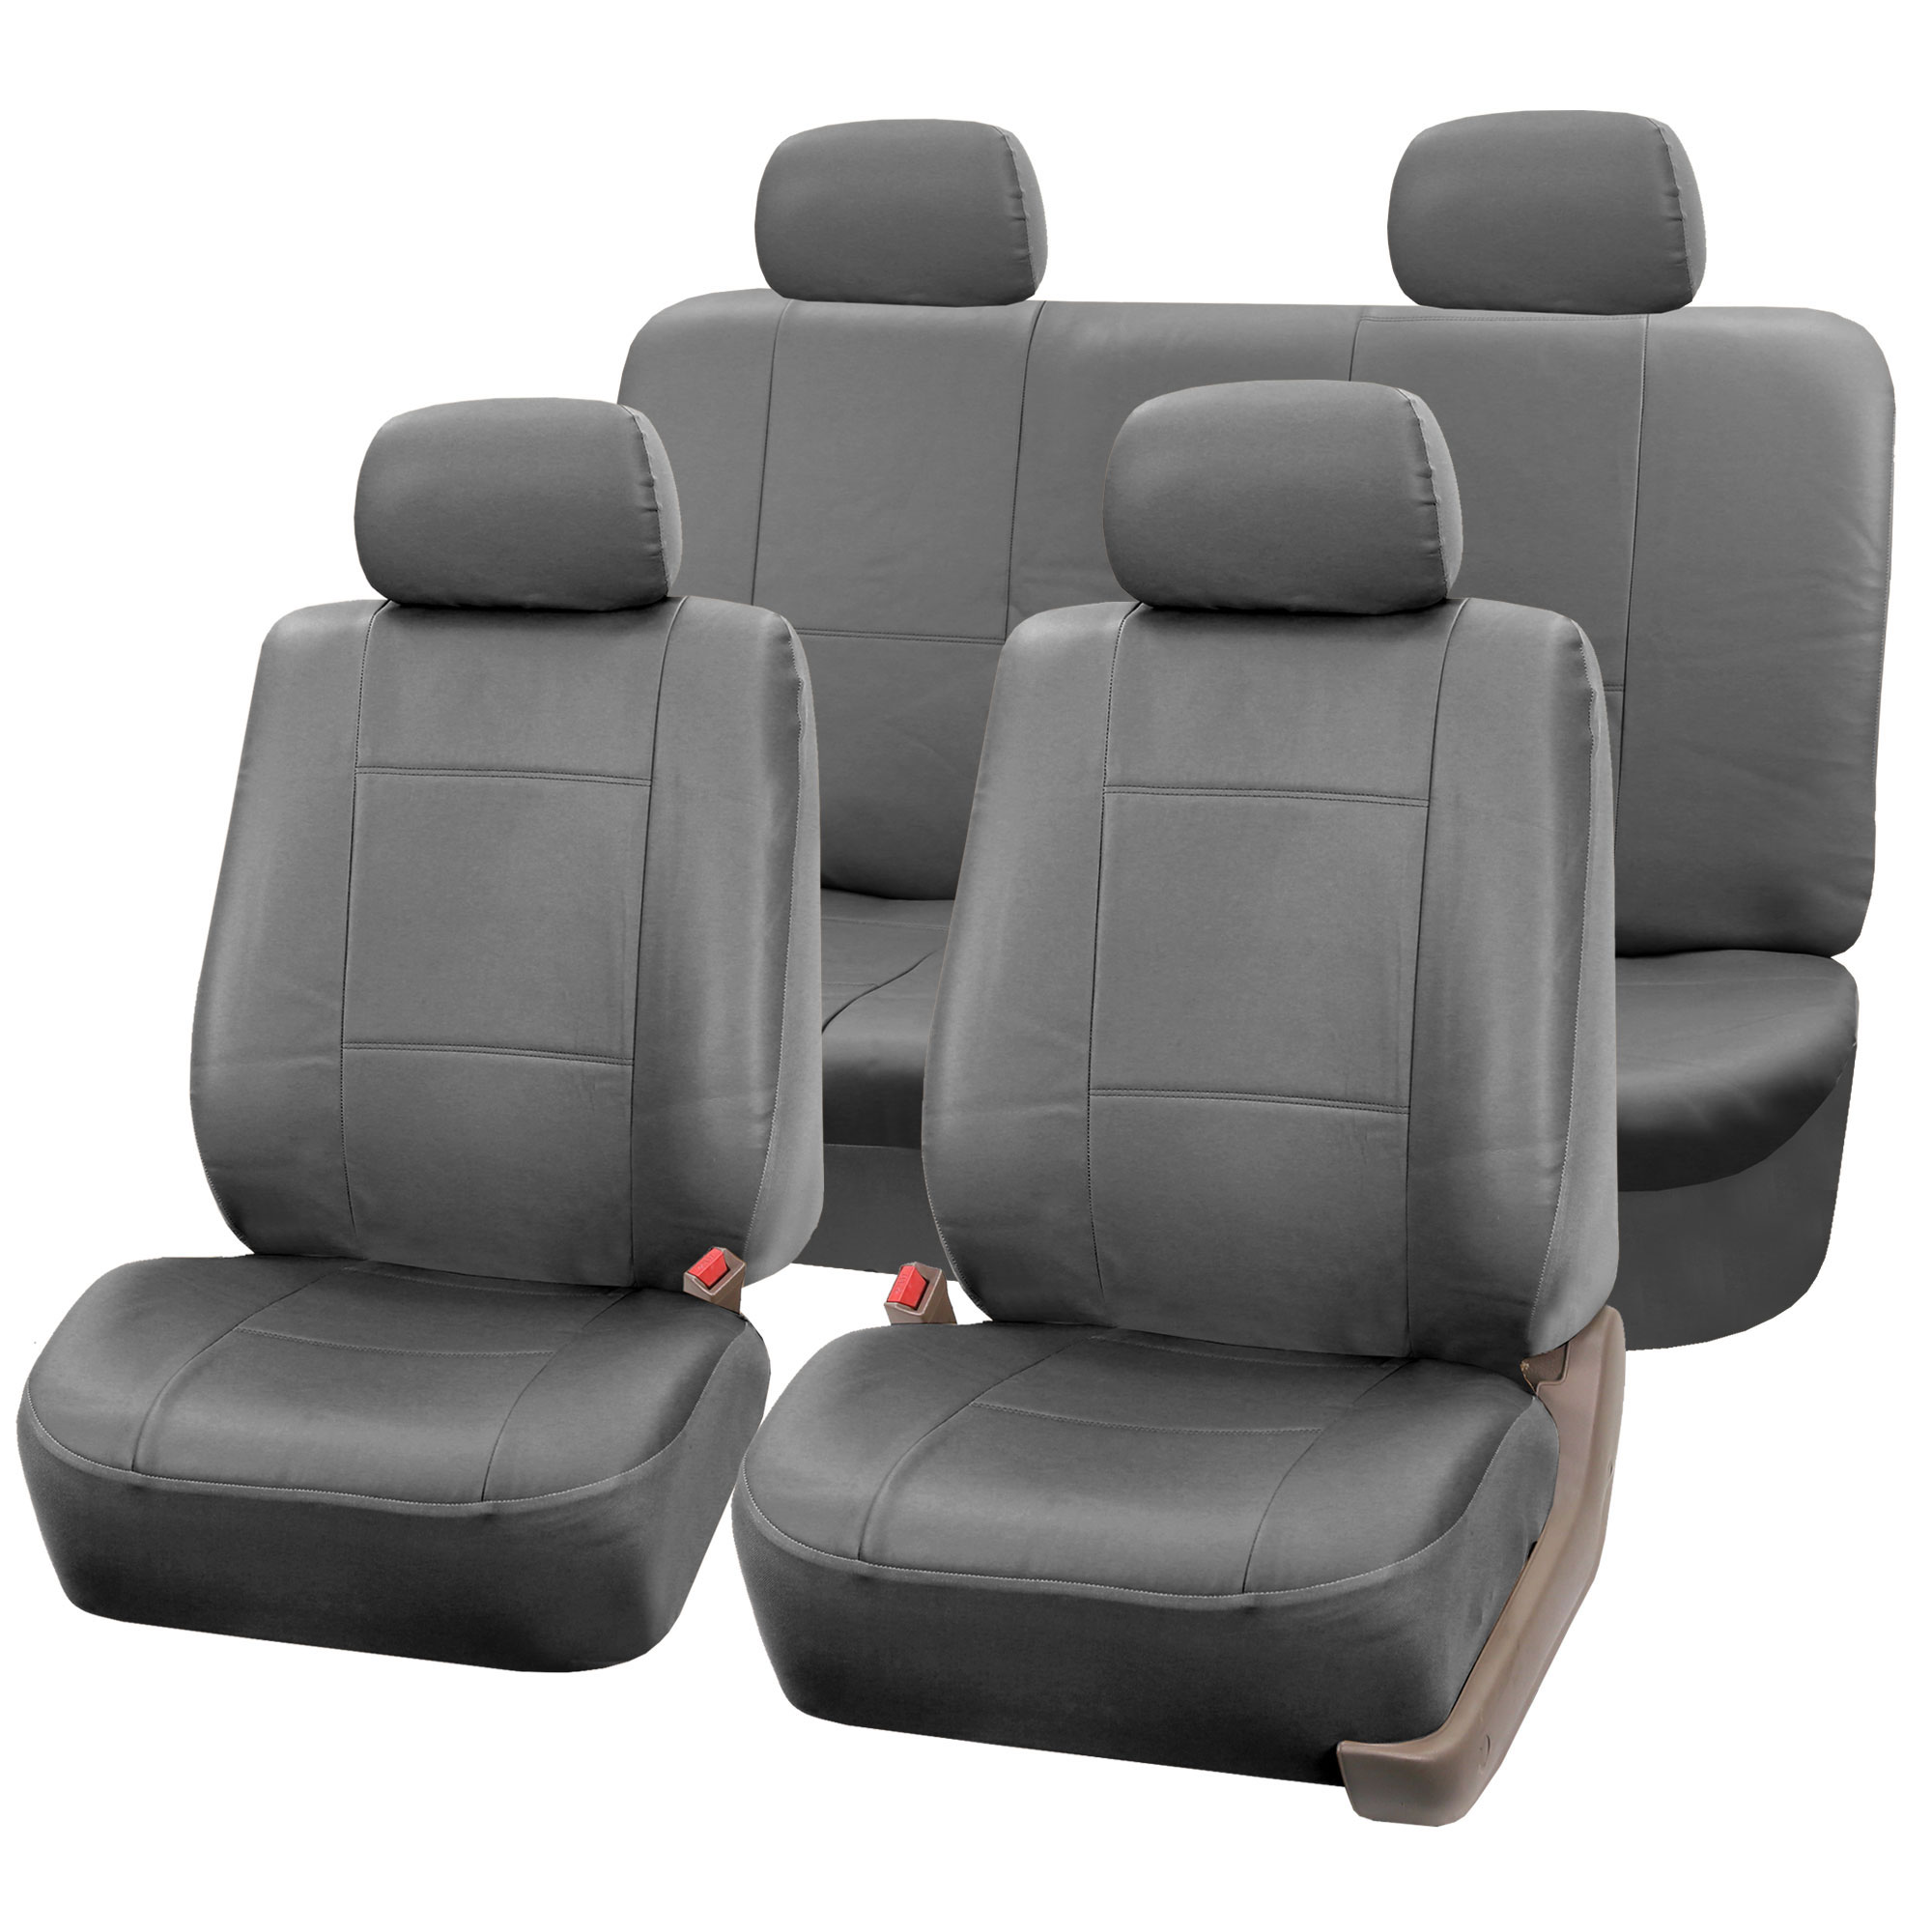 Ebay Car Seat Covers >> PU Leather Bucket Seat/Full Set Covers for Seats with Headrests | eBay